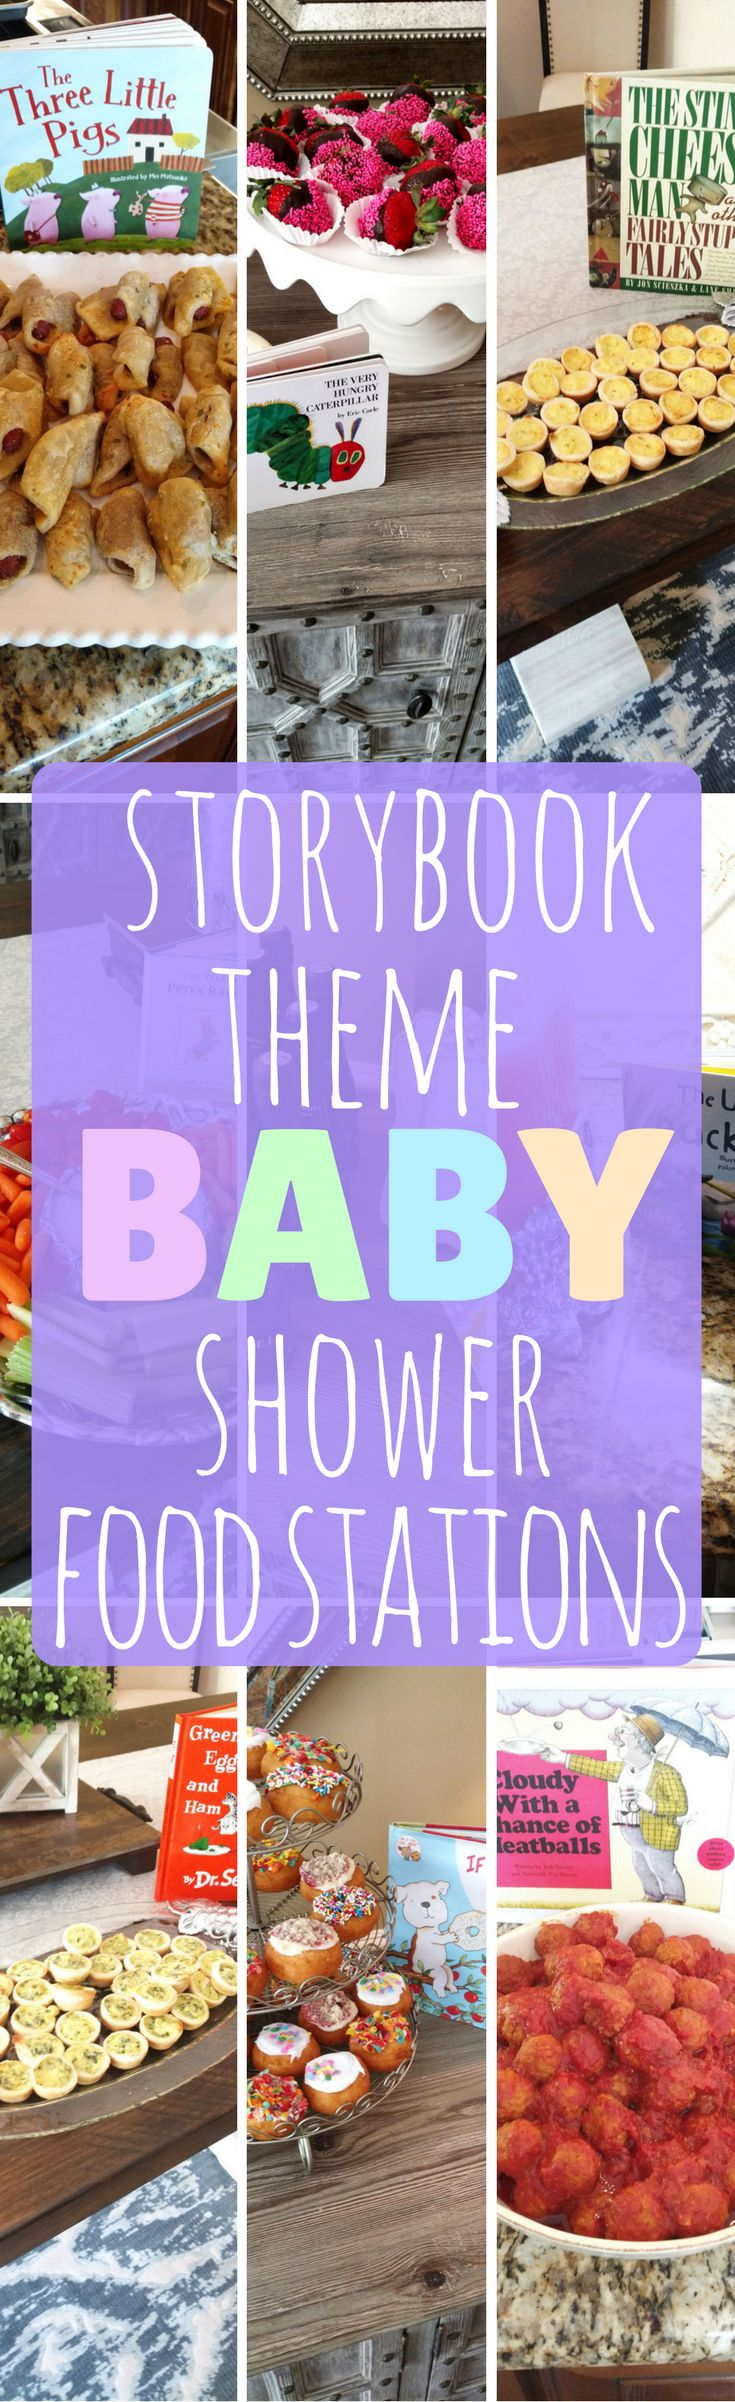 Adorable baby shower idea for a boy or girl! Full list of how to plan the perfect storybook themed baby shower with 8 food and drink stations.